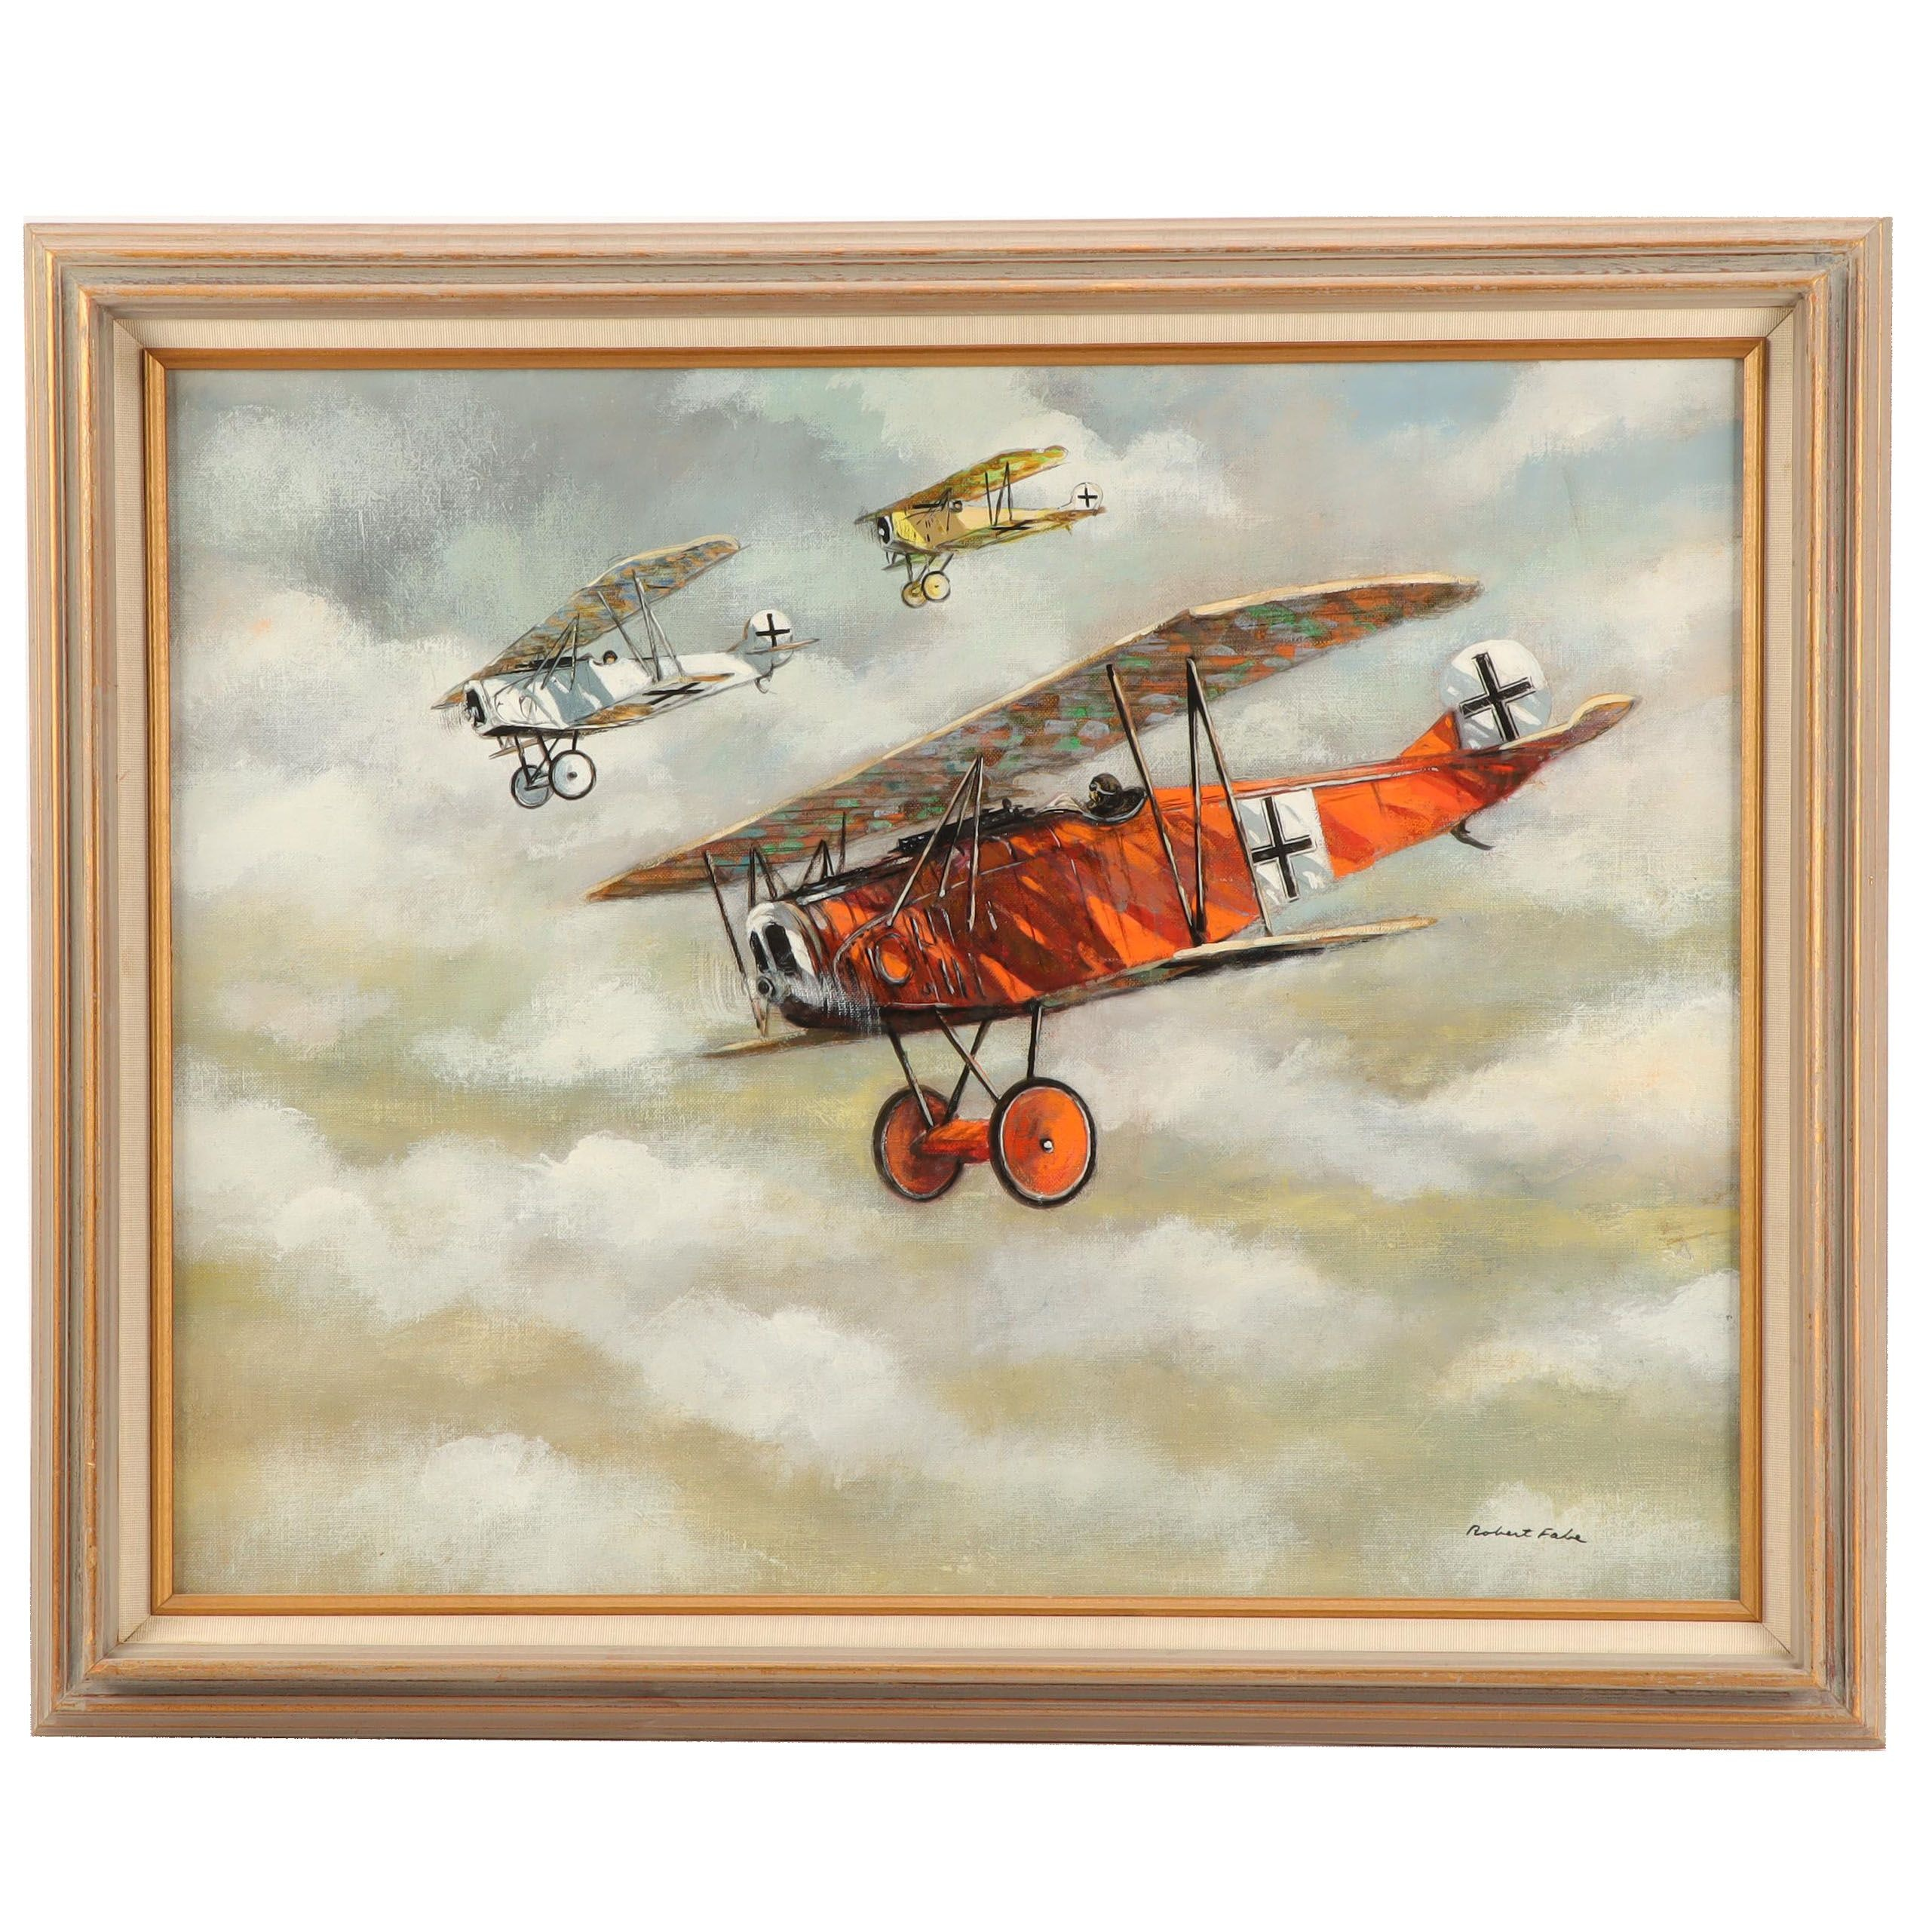 Robert Fabe Oil Painting of Biplanes in Flight